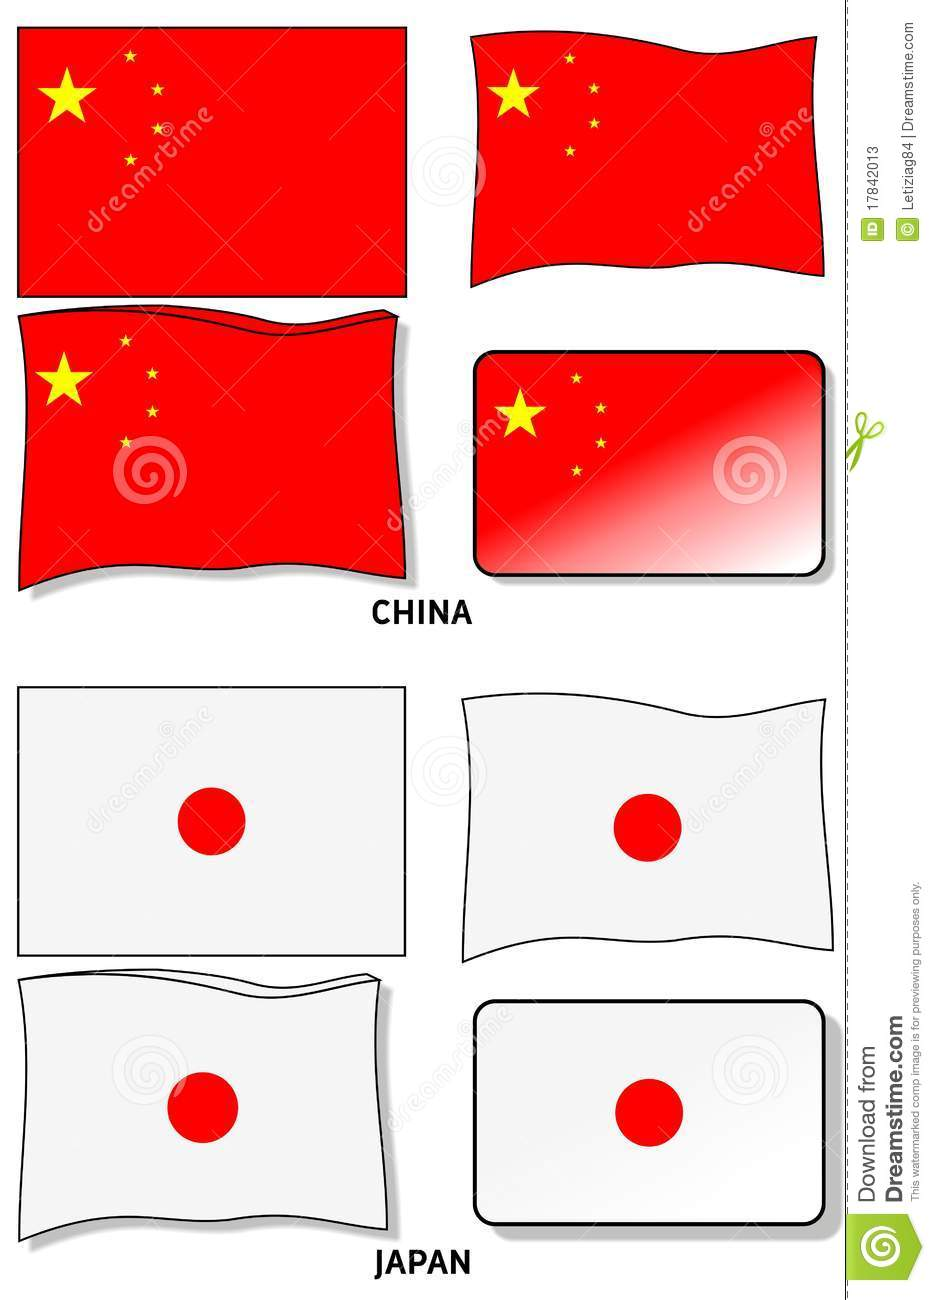 chinese flag and japanese flag stock photos image 17842013